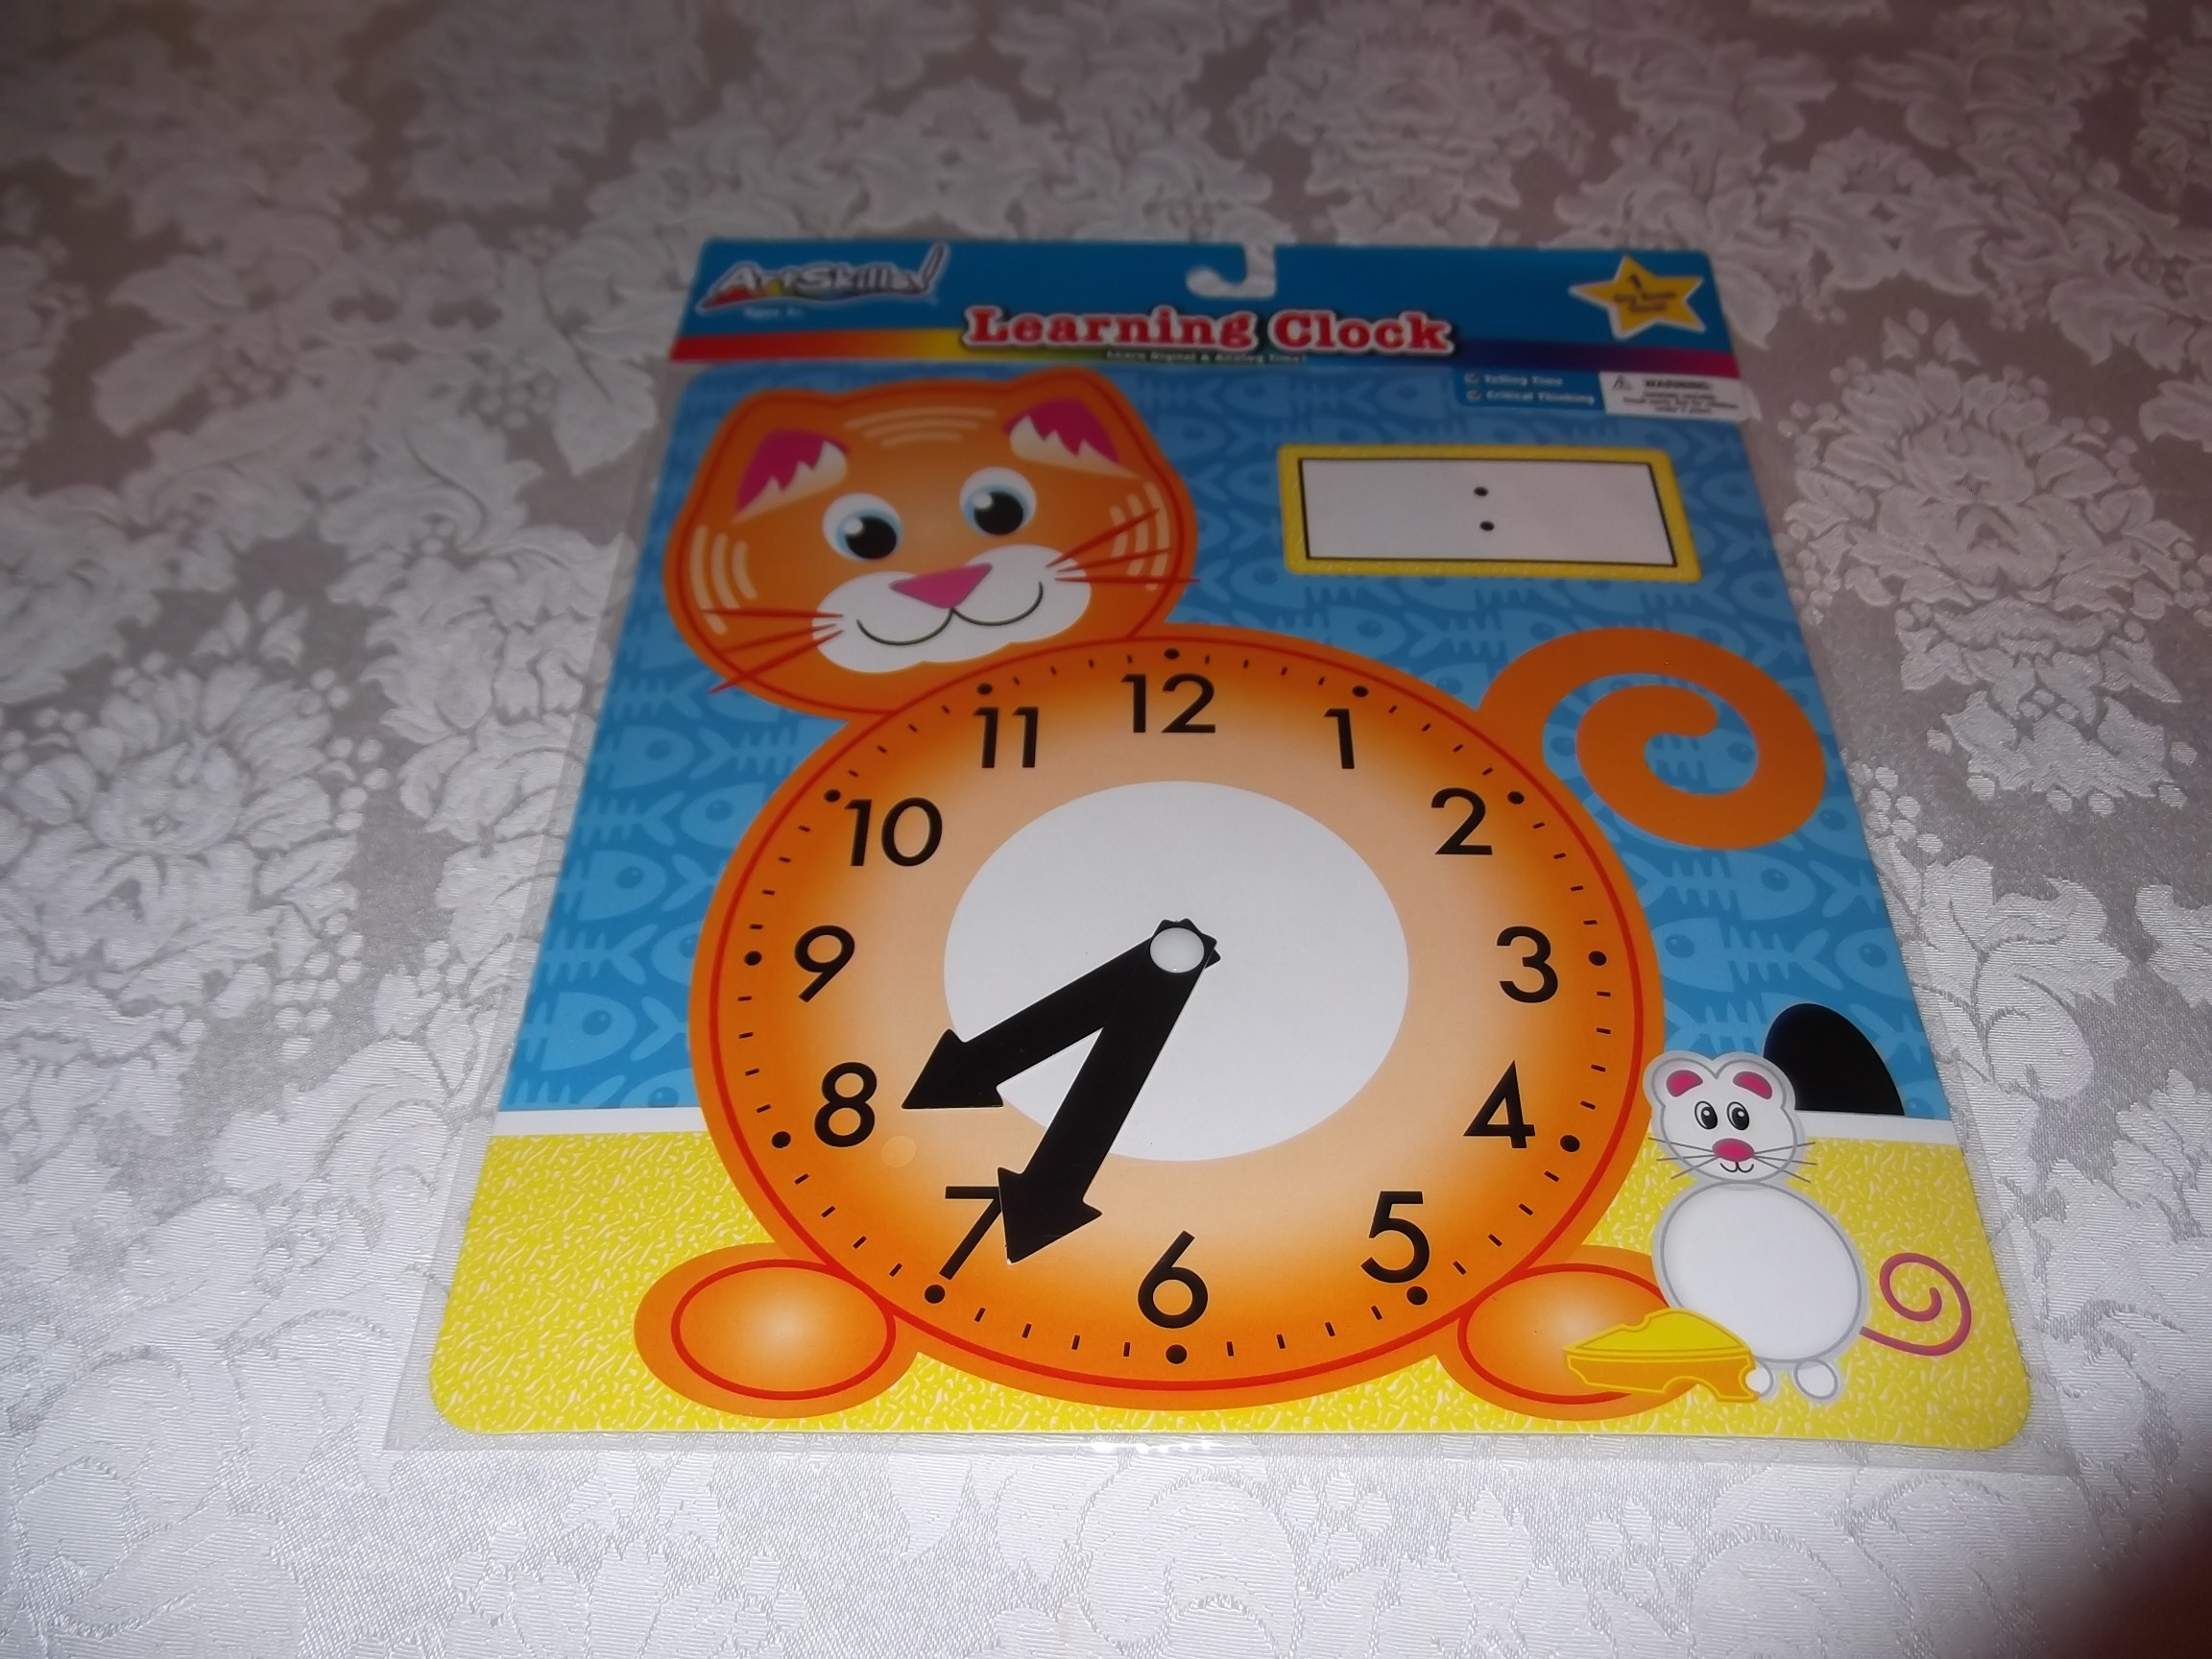 Cat Dry Erase Learning Clock Telling Time Movable Hands Artskills New Sealed